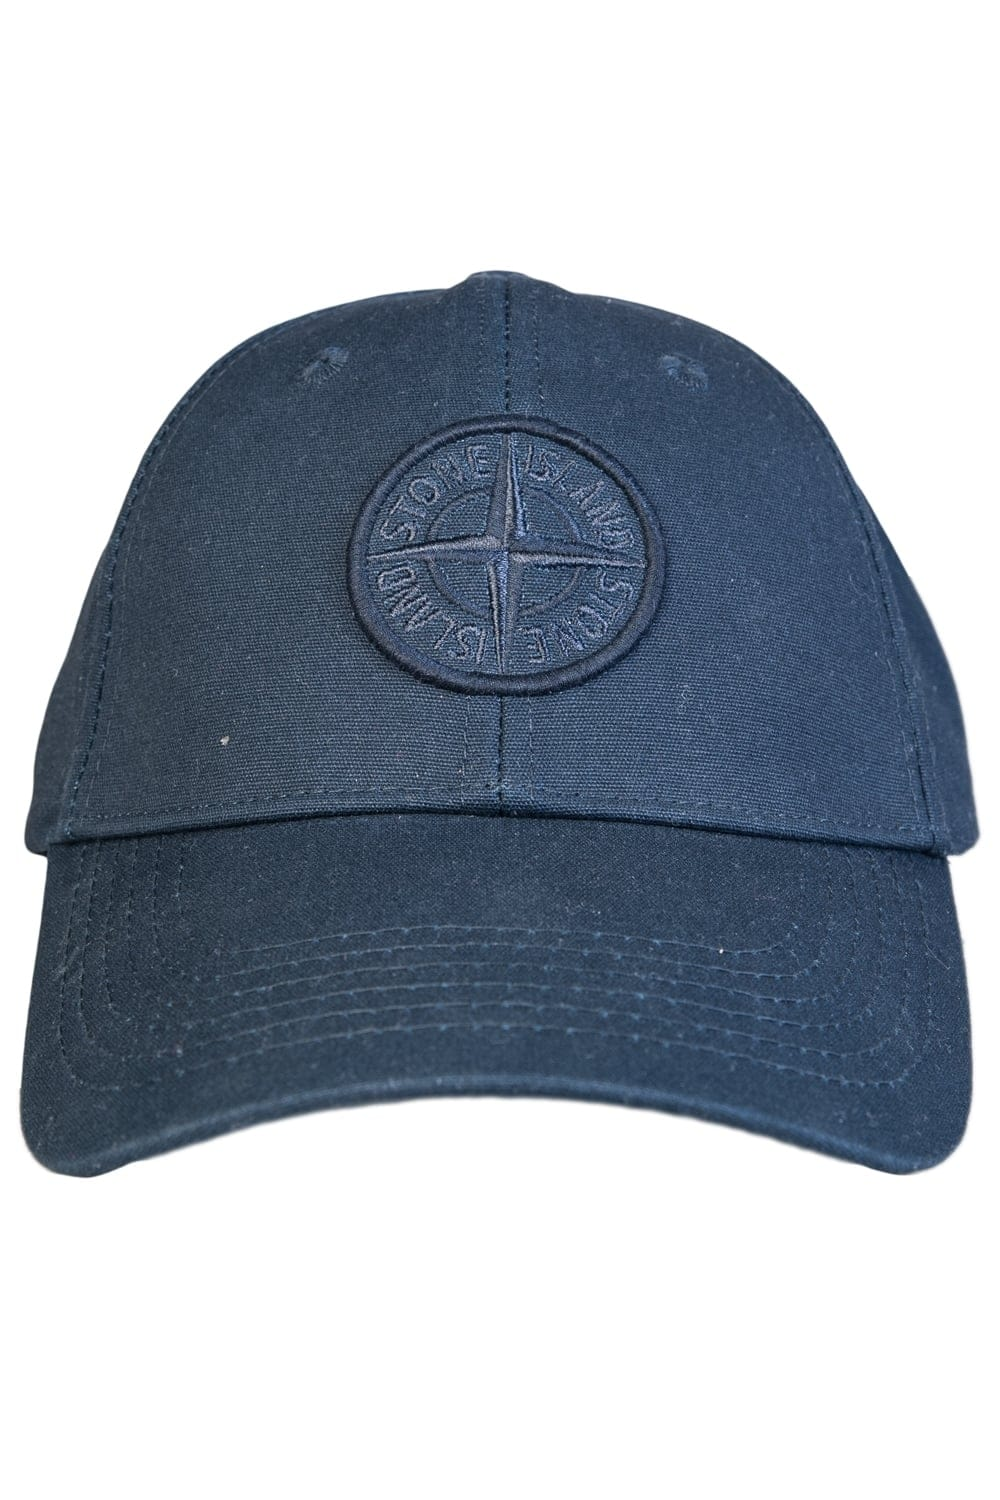 Day Stone Baseball Caps Related Keywords   Suggestions - Day Stone ... 2e13515dca88